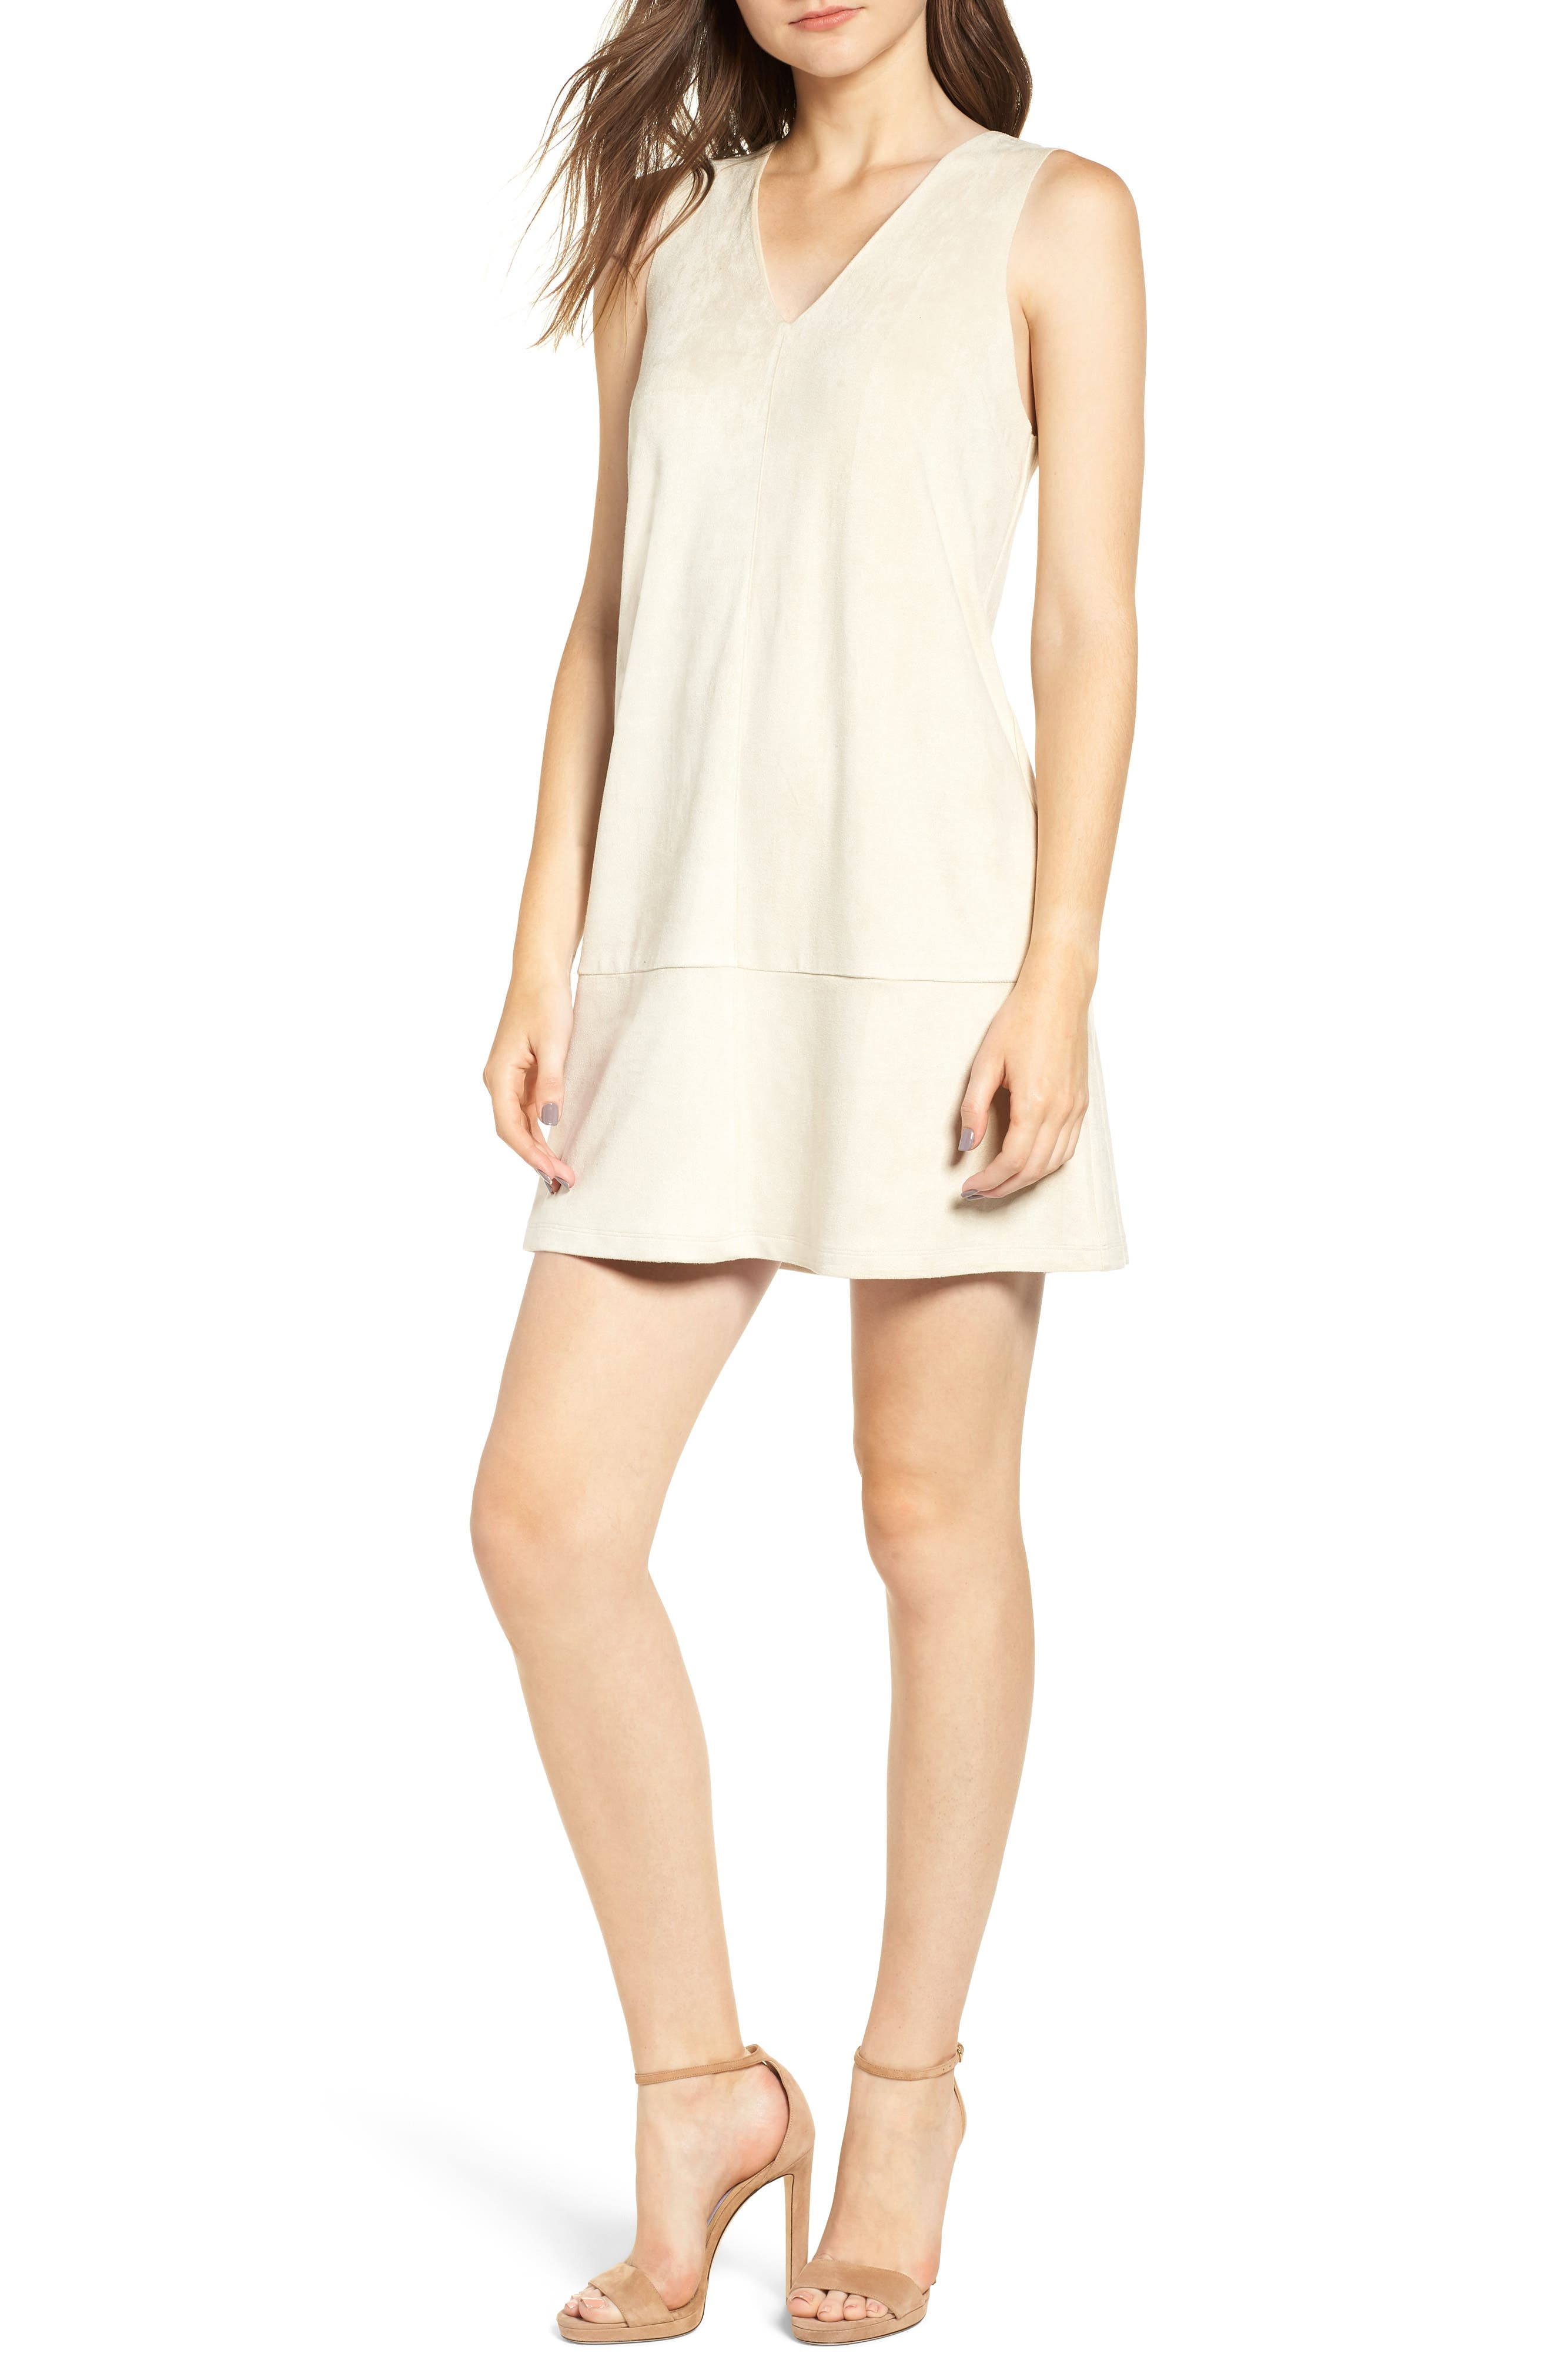 Sueded Sleeveless Shift Dress,                             Main thumbnail 1, color,                             251